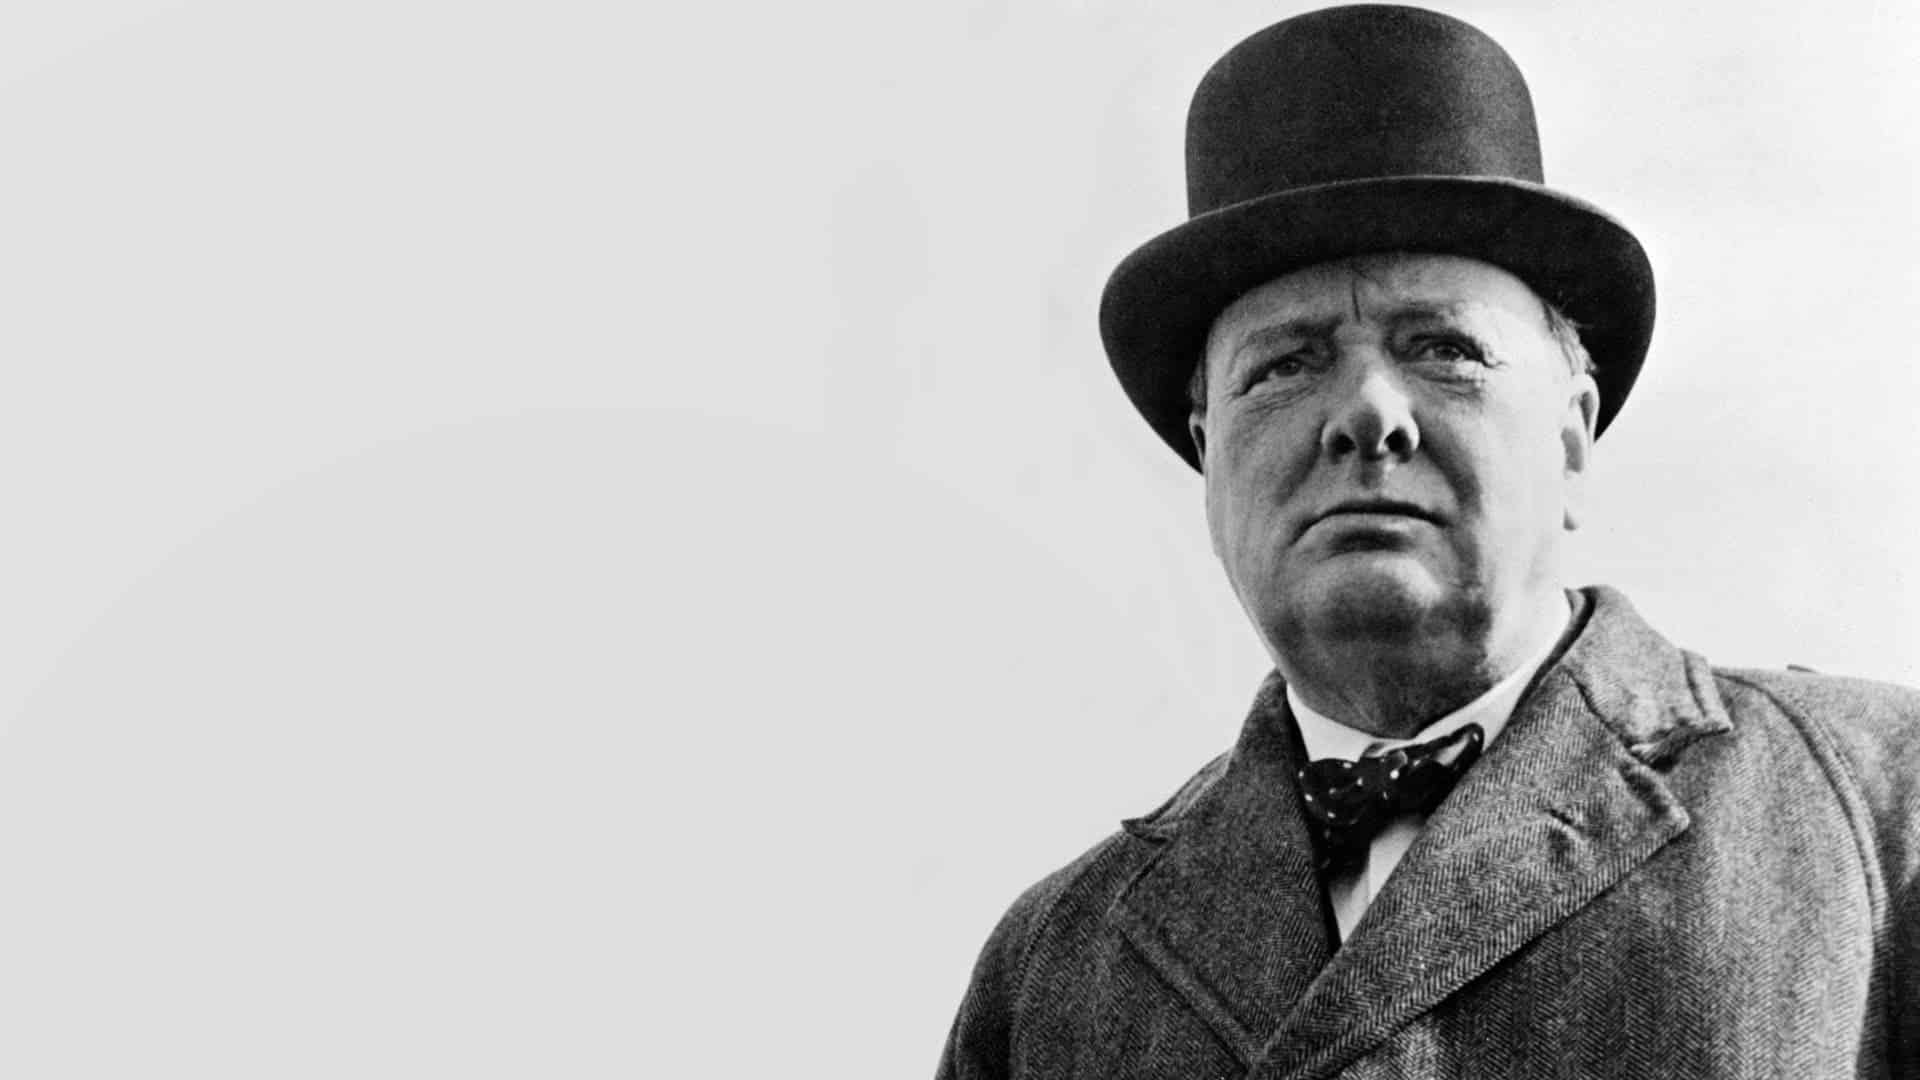 comment winston churchill essay Winston churchill penned an 11-page essay about the who was given the churchill essay by the us museum, writing a comment part of the daily mail.